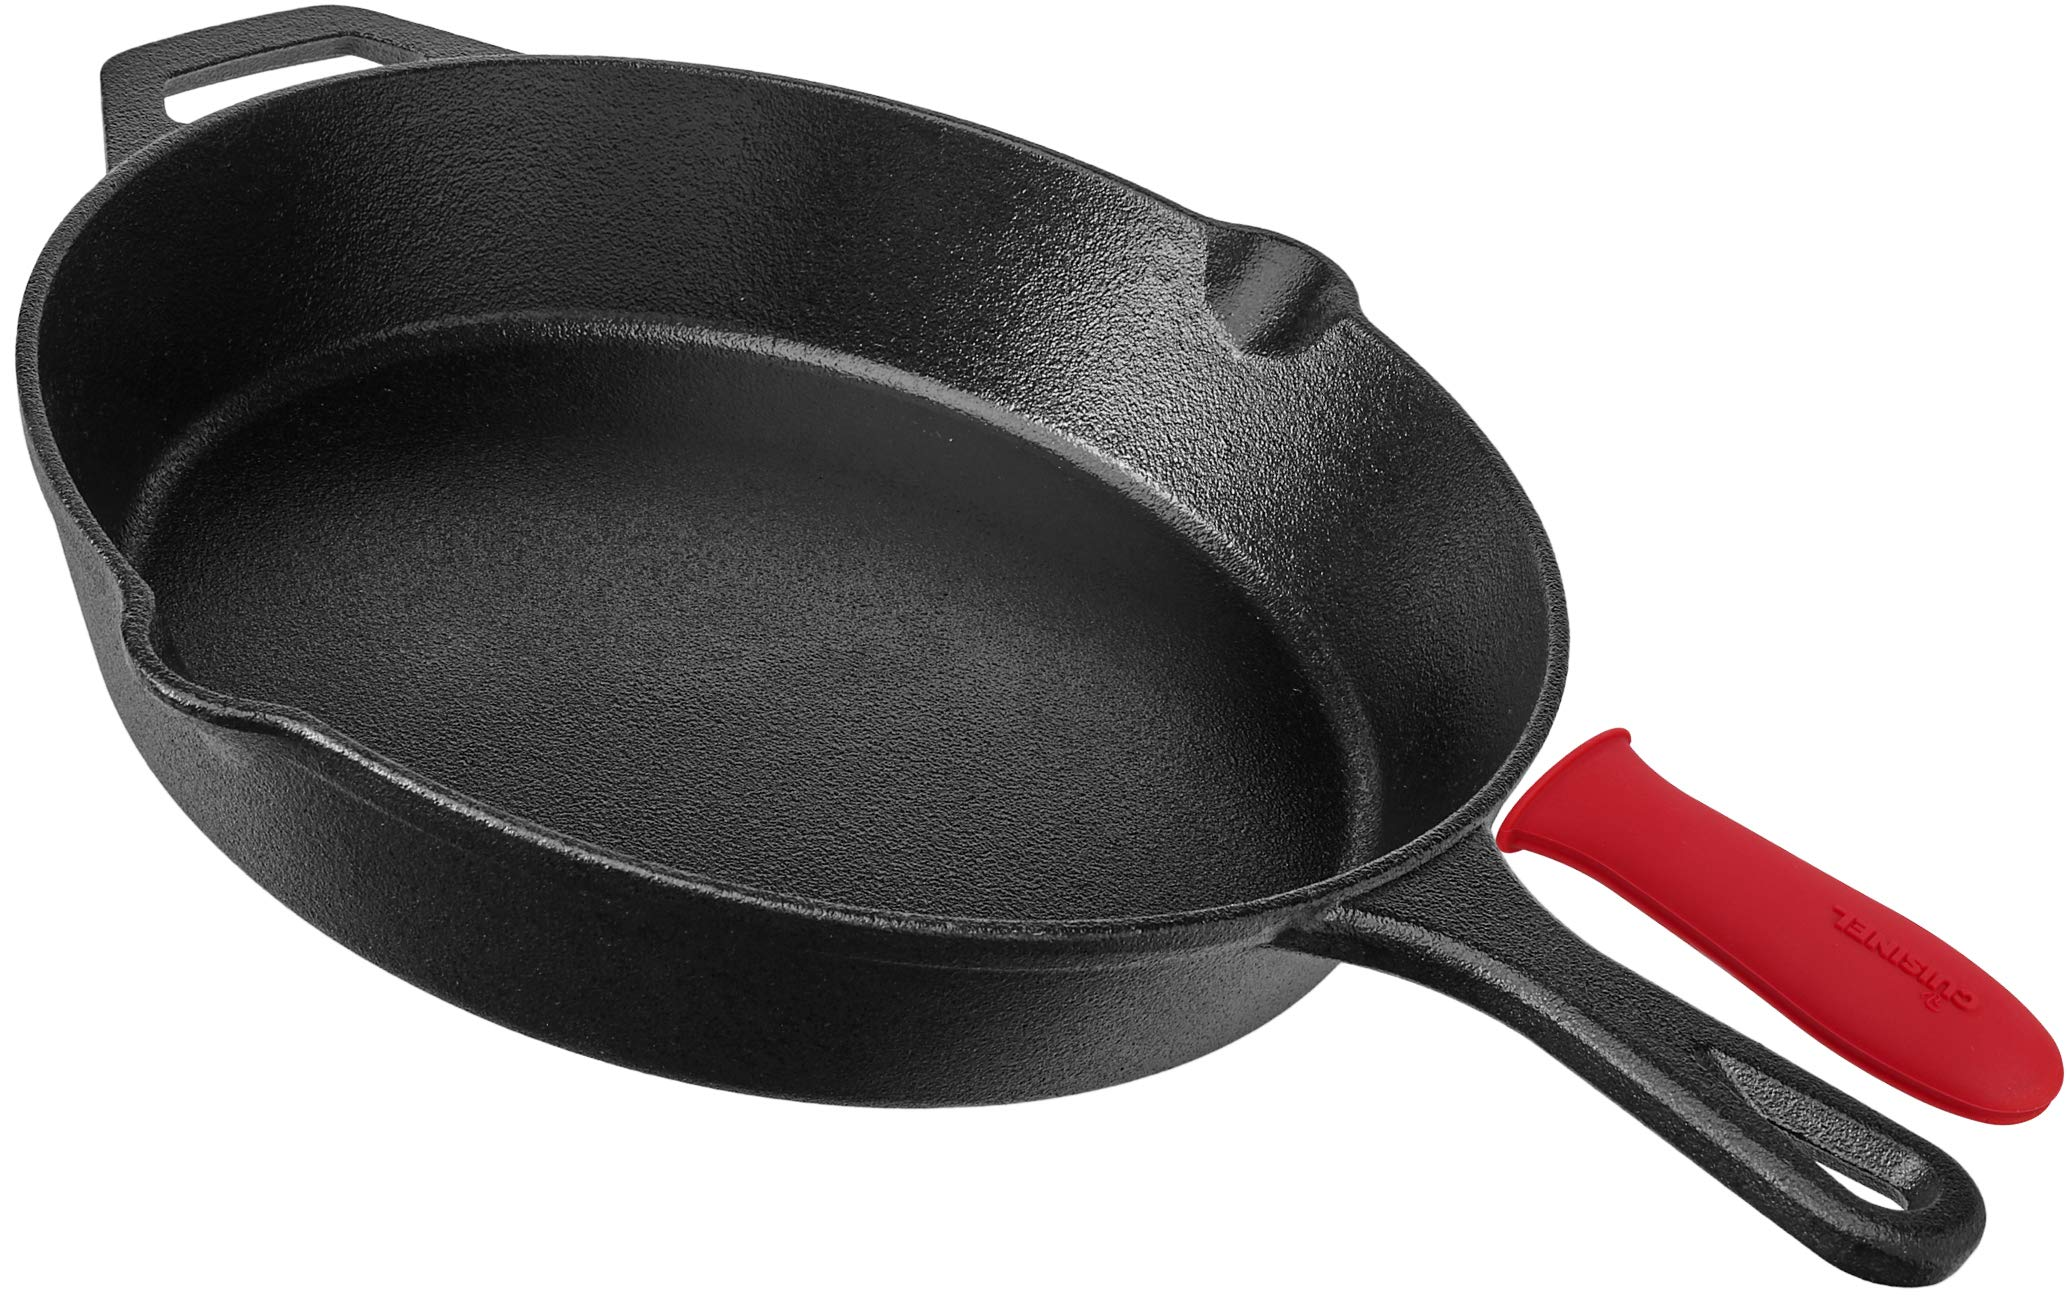 cuisinel Pre-Seasoned Cast Iron Skillet (12-Inch) w/Handle Cover Oven Cookware | Heat-Resistant Holder | Indoor and Outdoor Use | Grill,Induction Safe'', Black by cuisinel